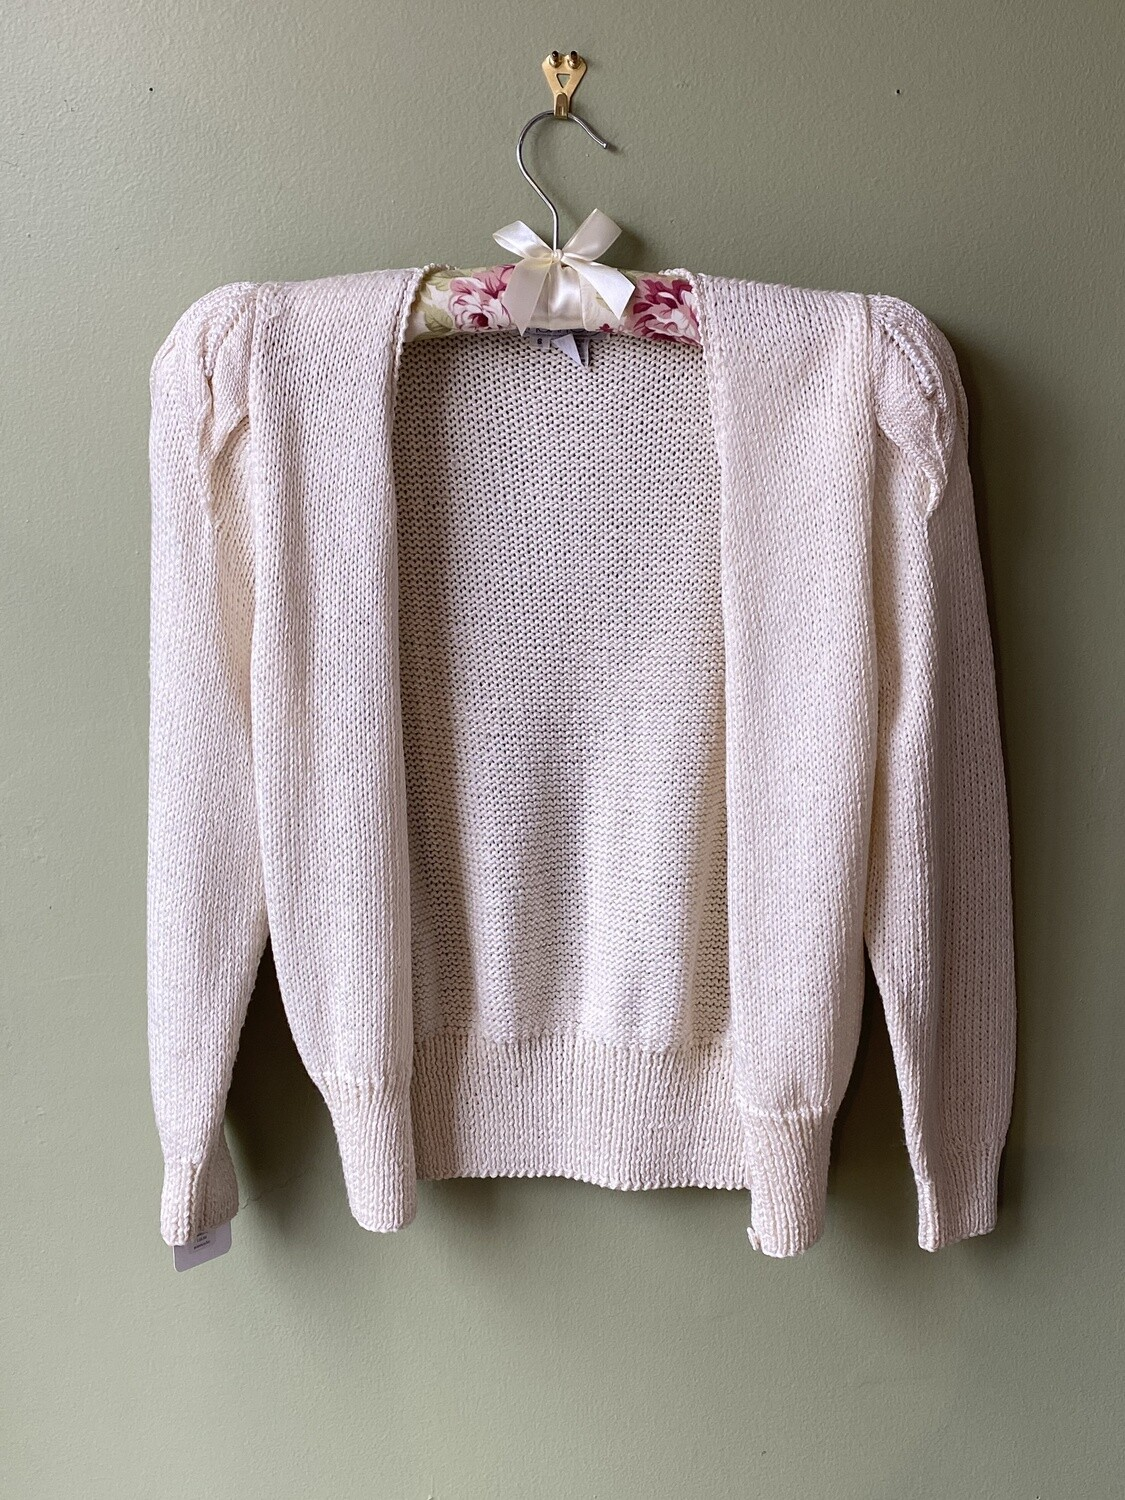 Nannell Wool-blend Sweater, Size S